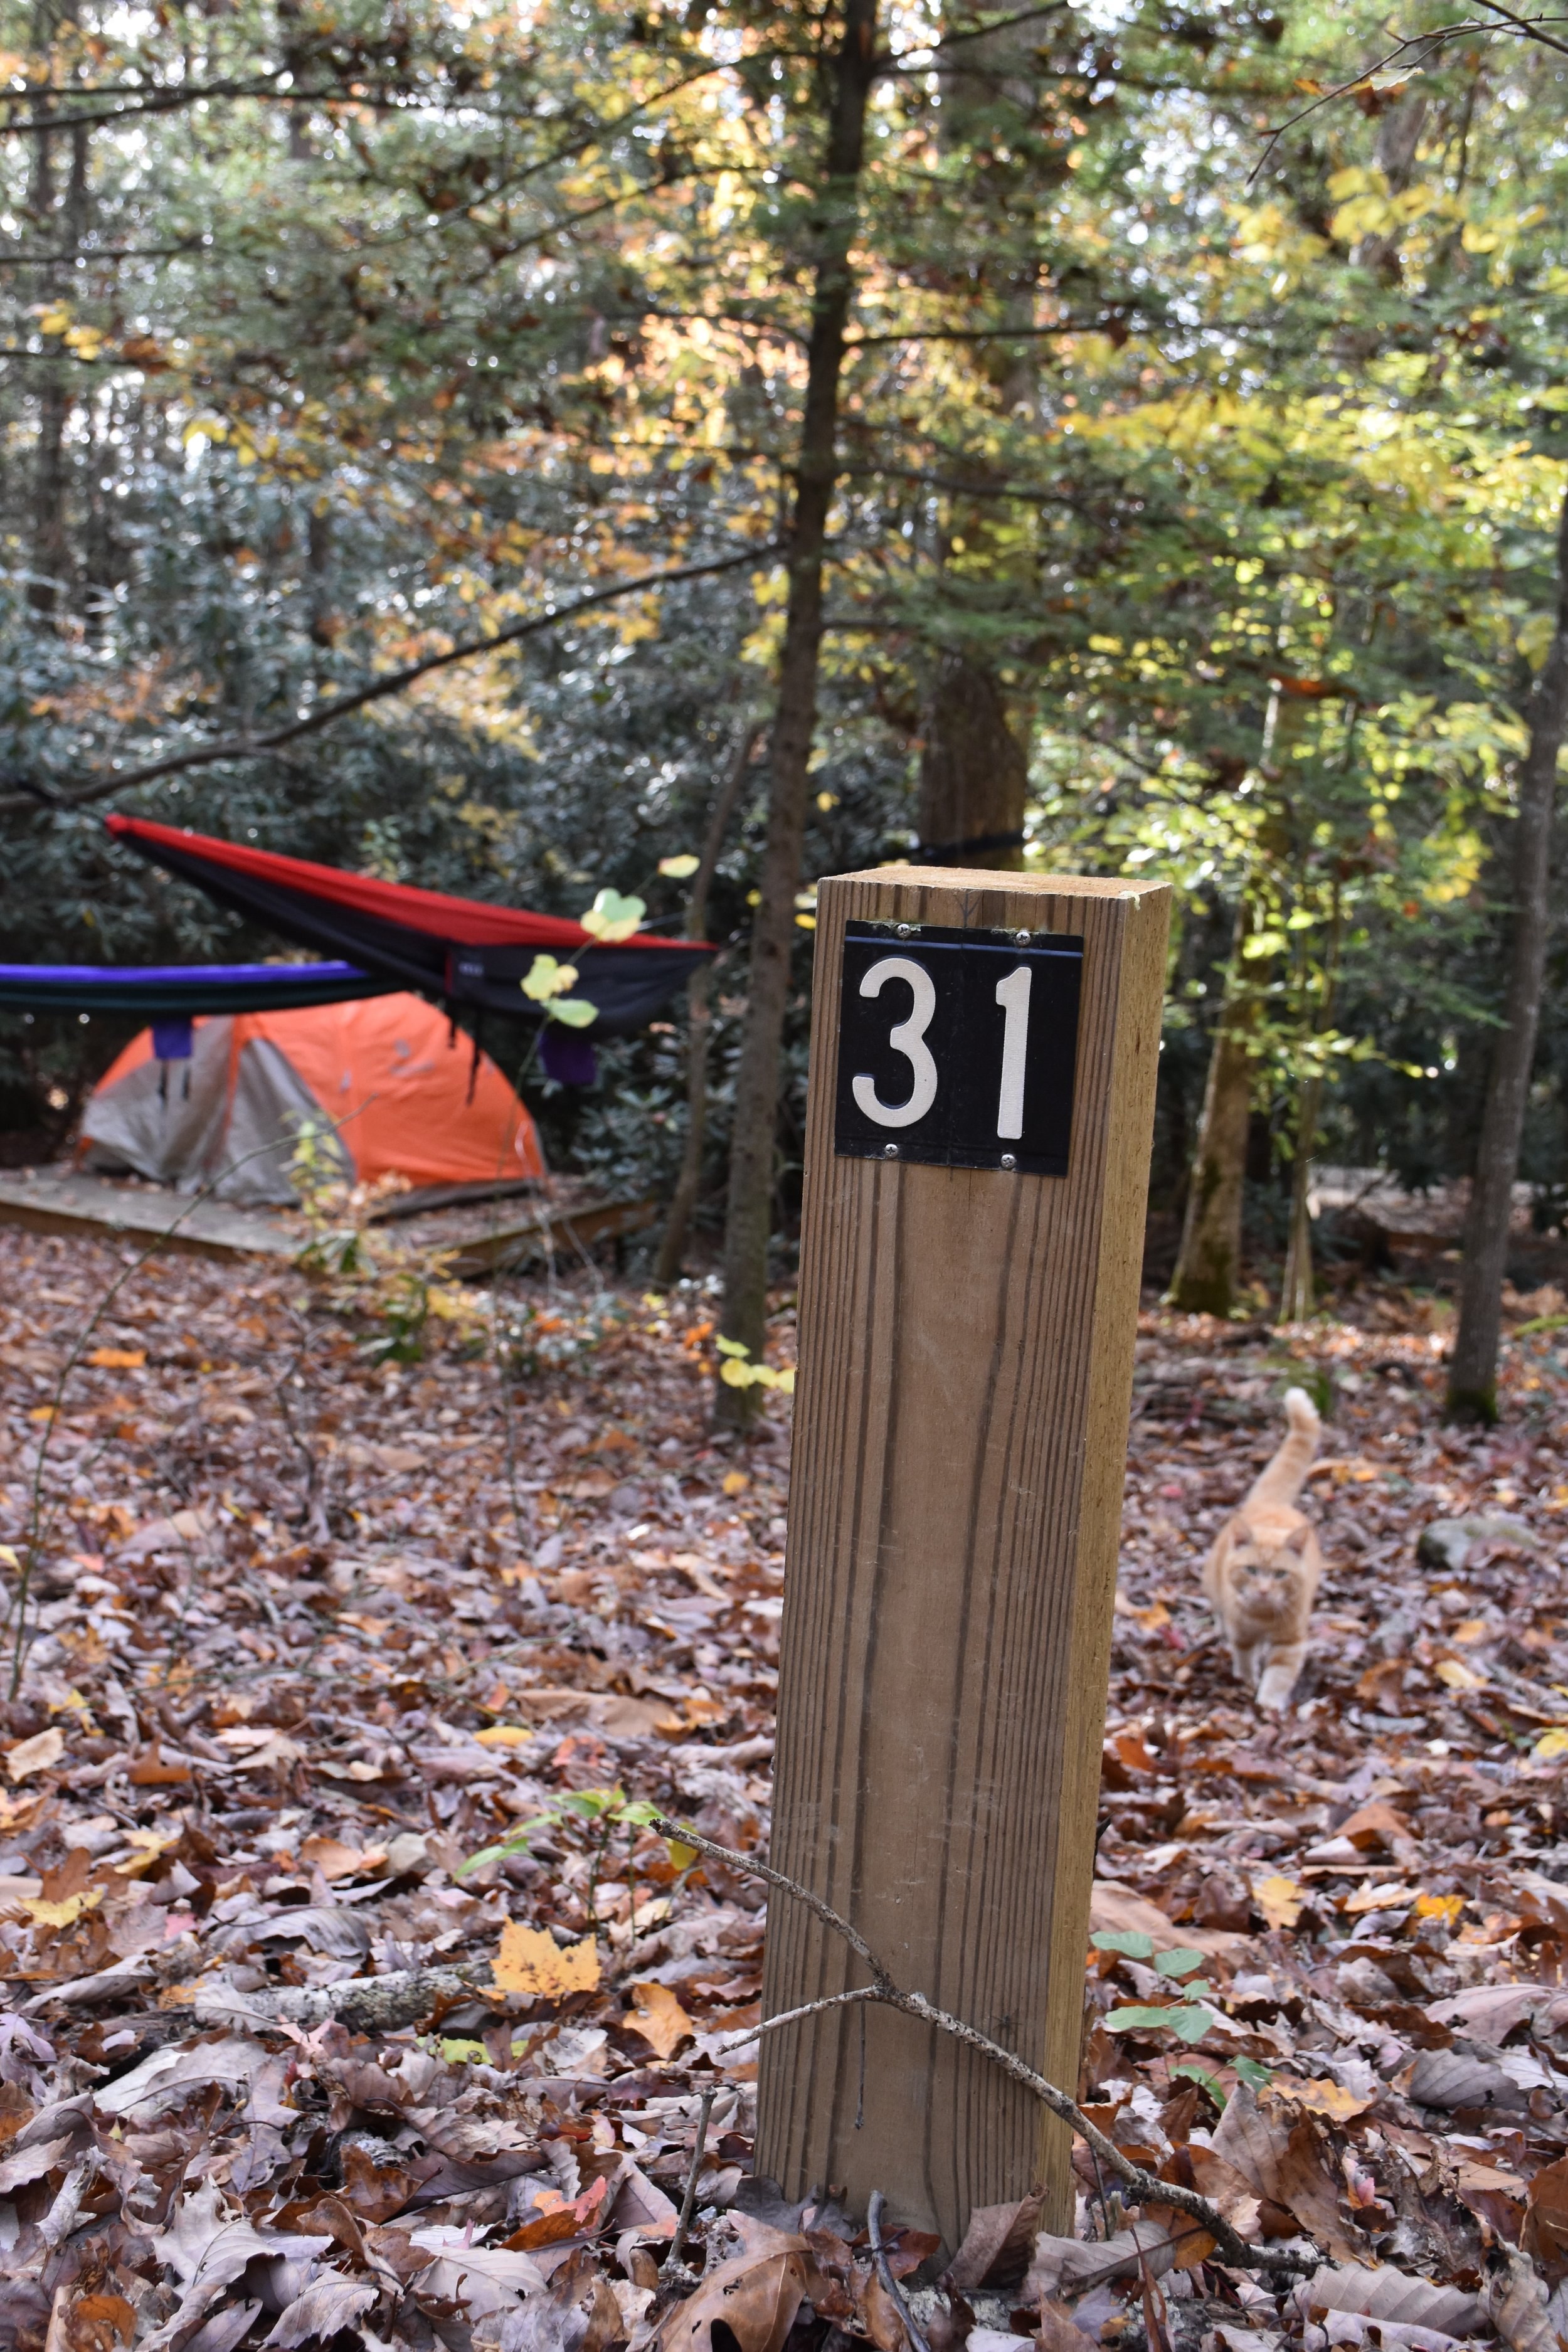 American Alpine Club campground - our site from October 2015.